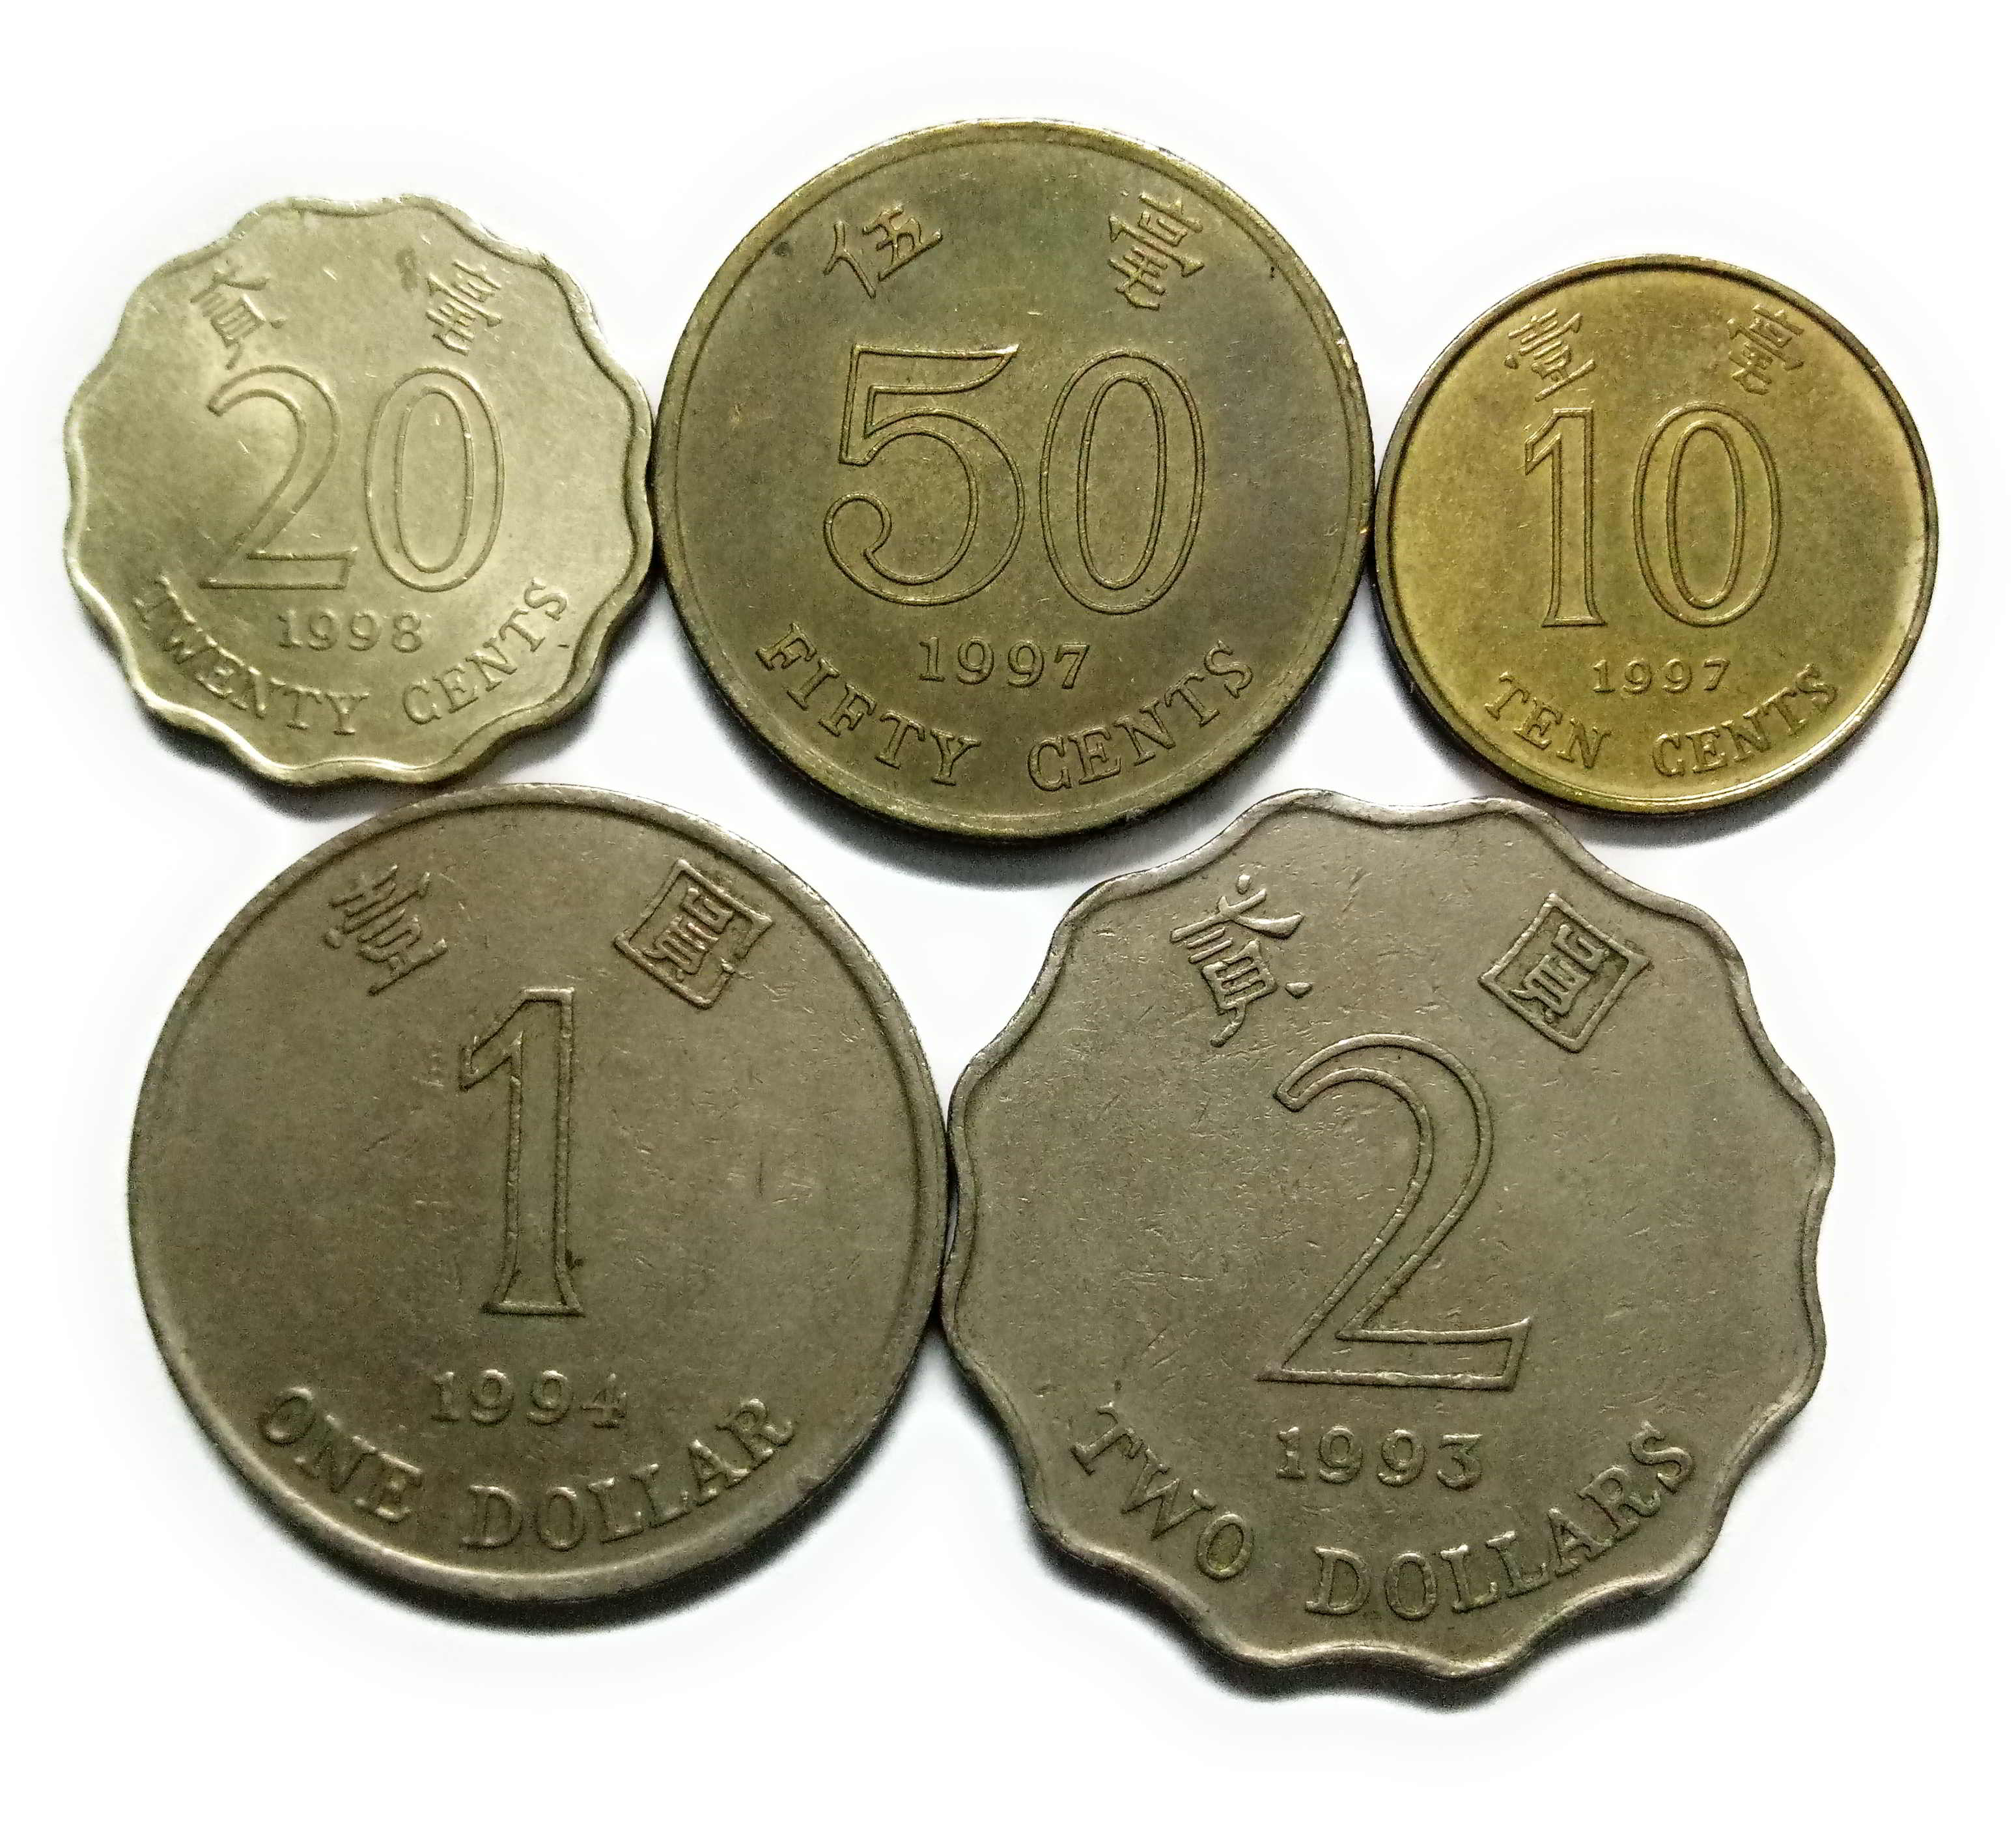 Hong Kong Set Of 5 Coins Www Coinstamp In